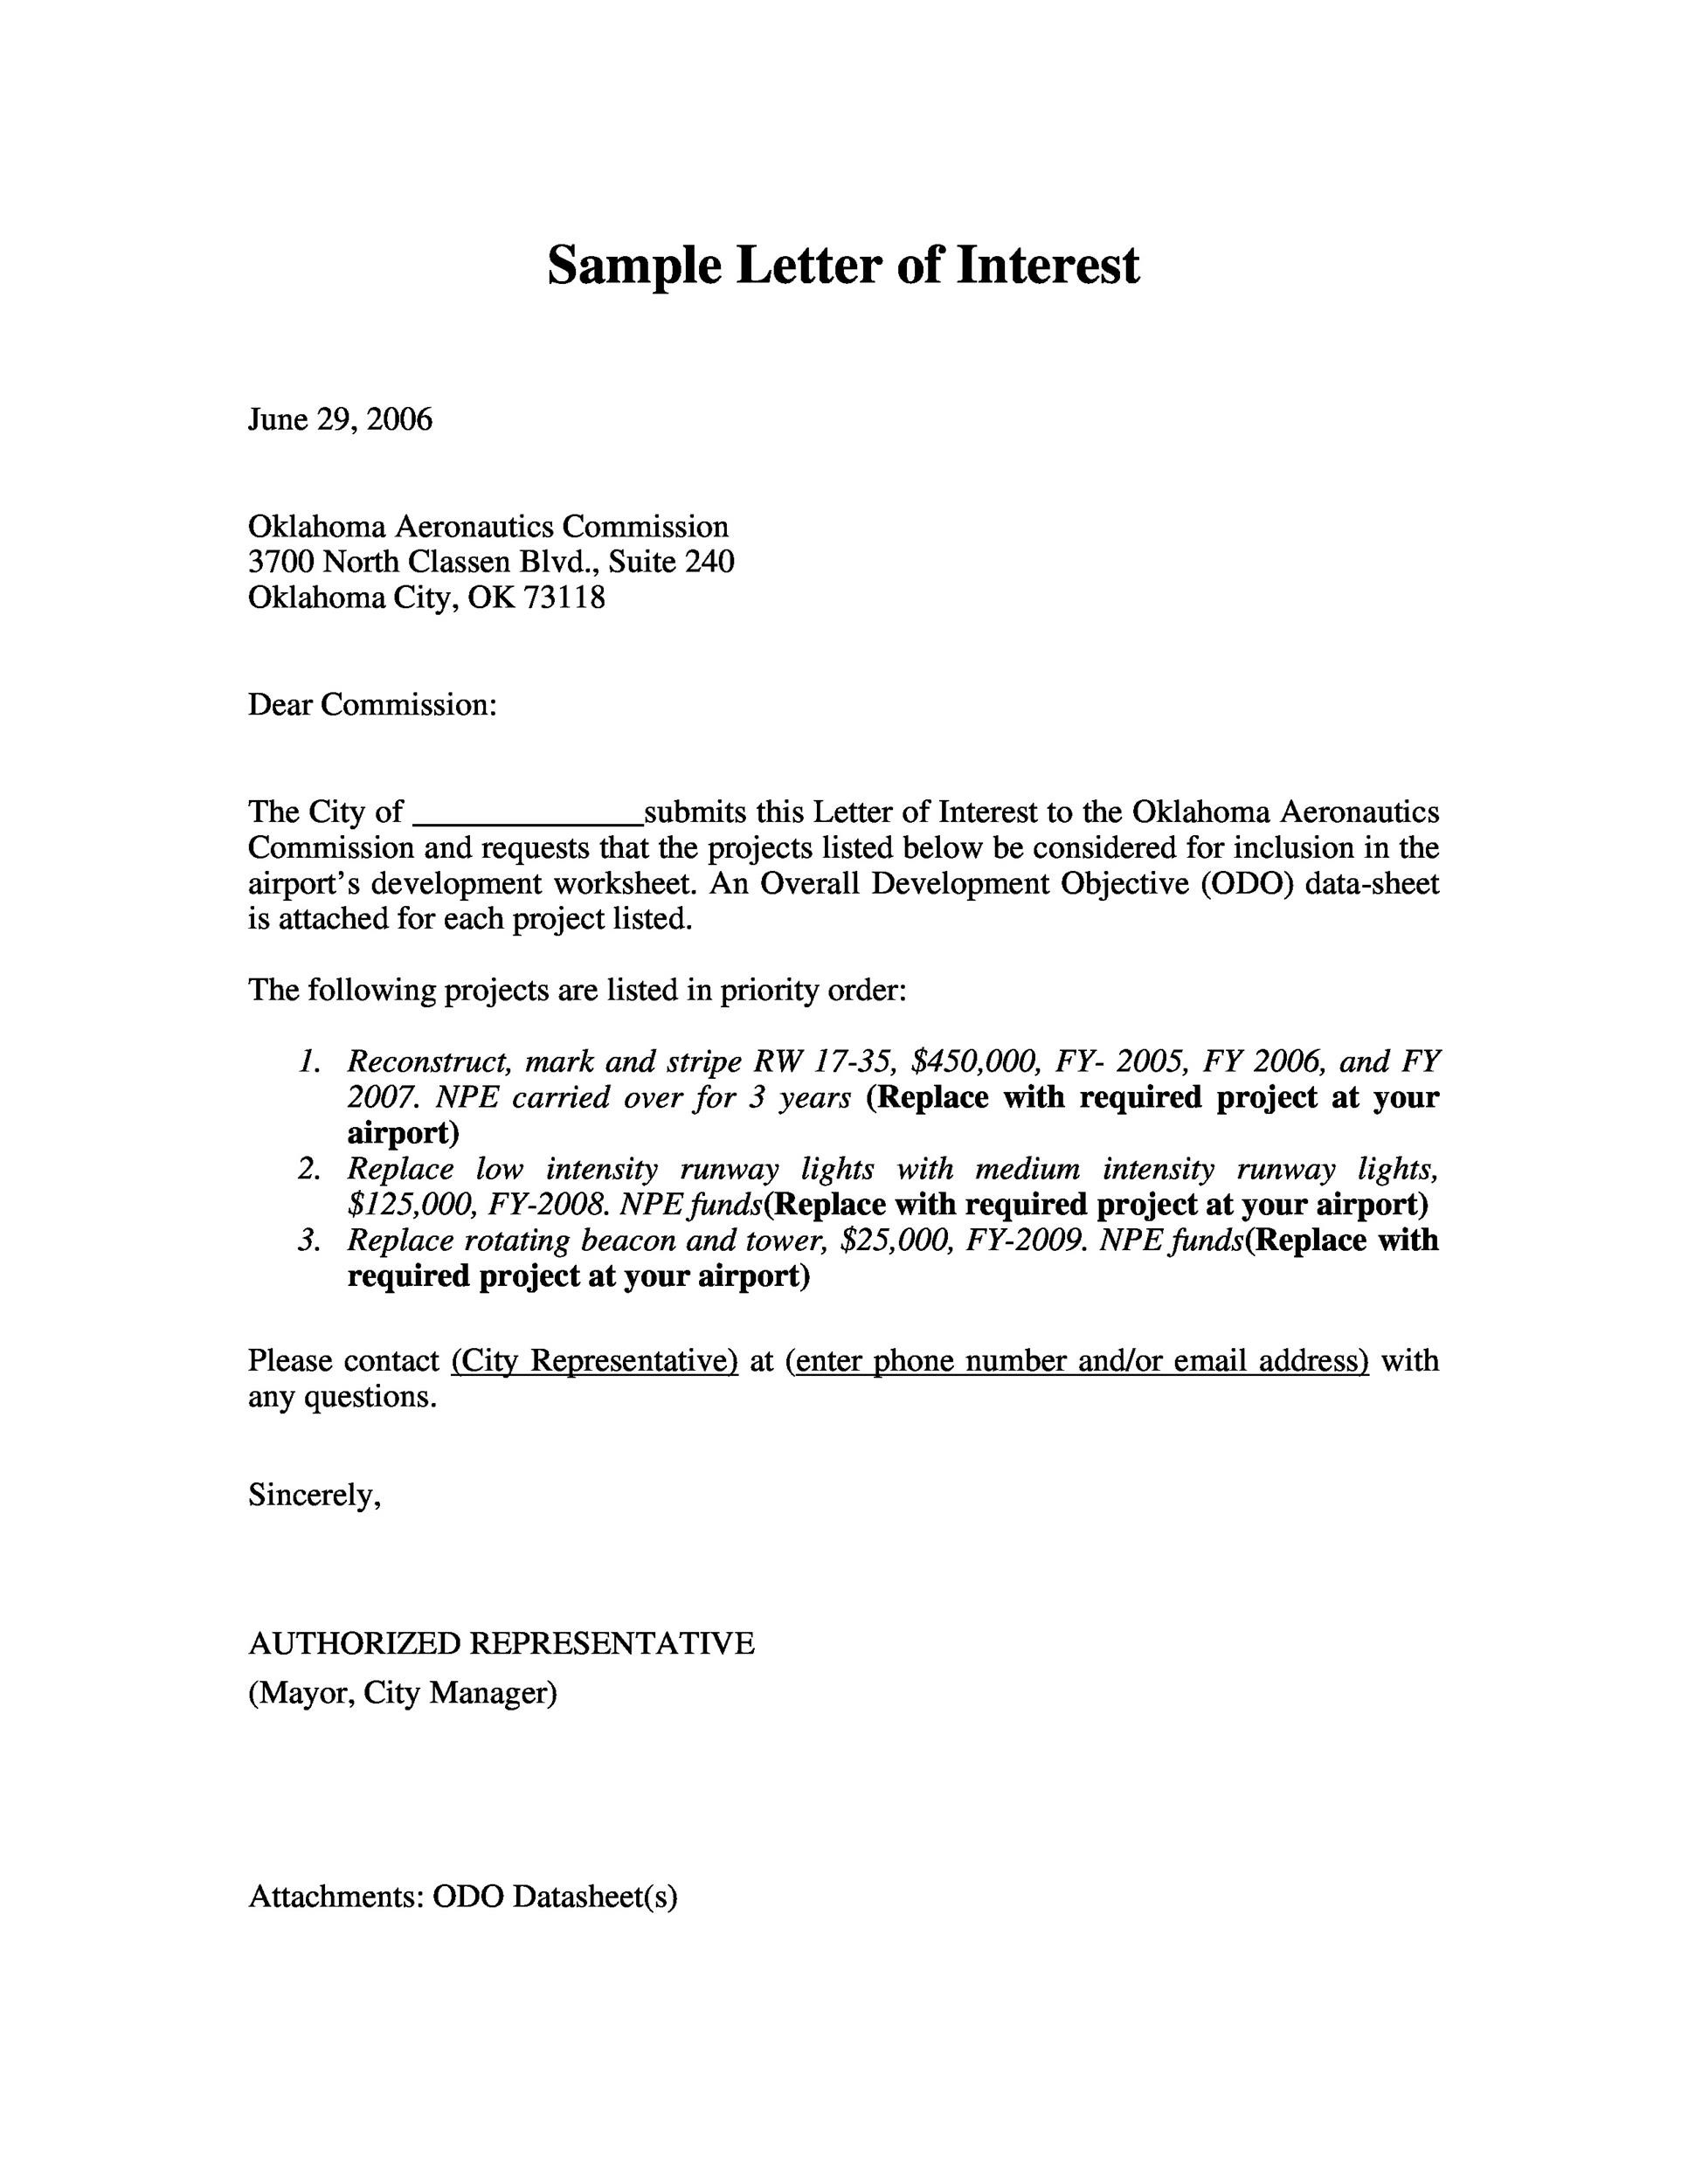 How to Write a Teacher Letter of Interest